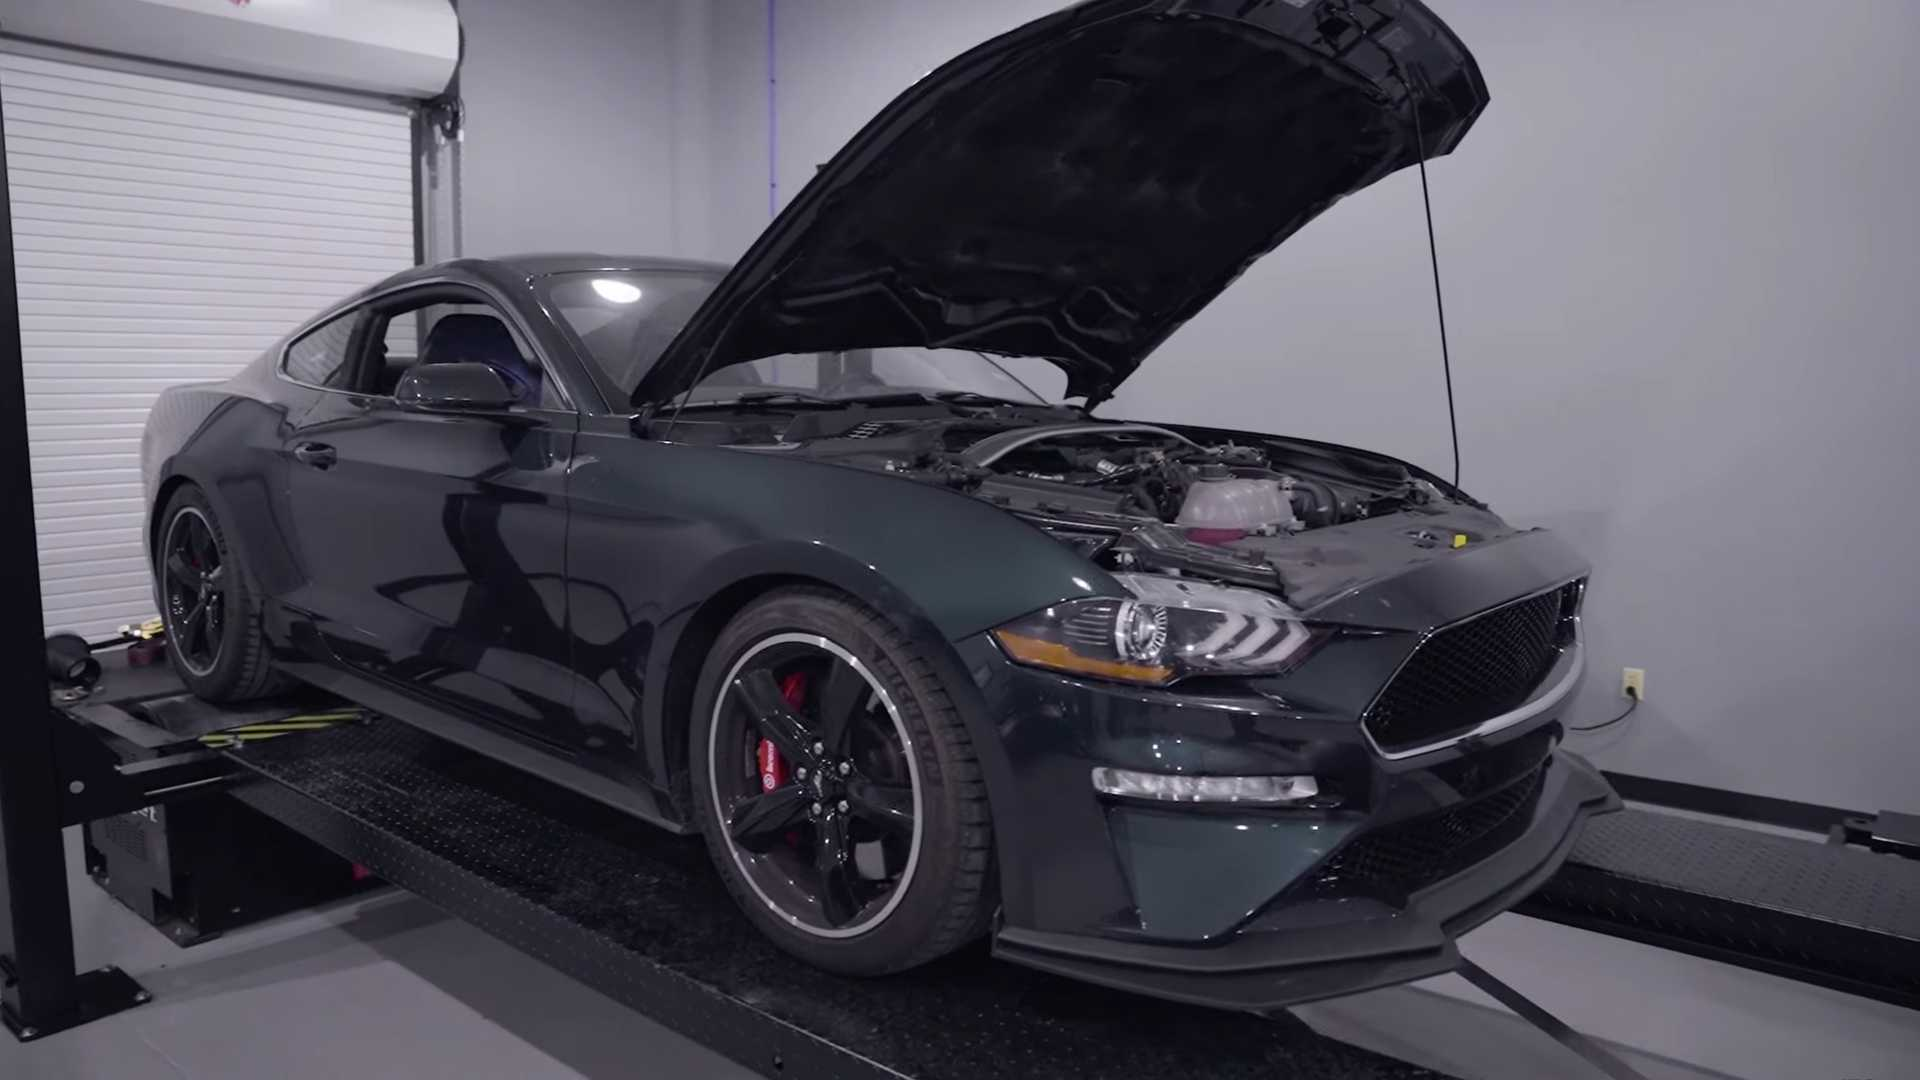 Curious To Know How Much Power The Mustang Bullit Actually Has?